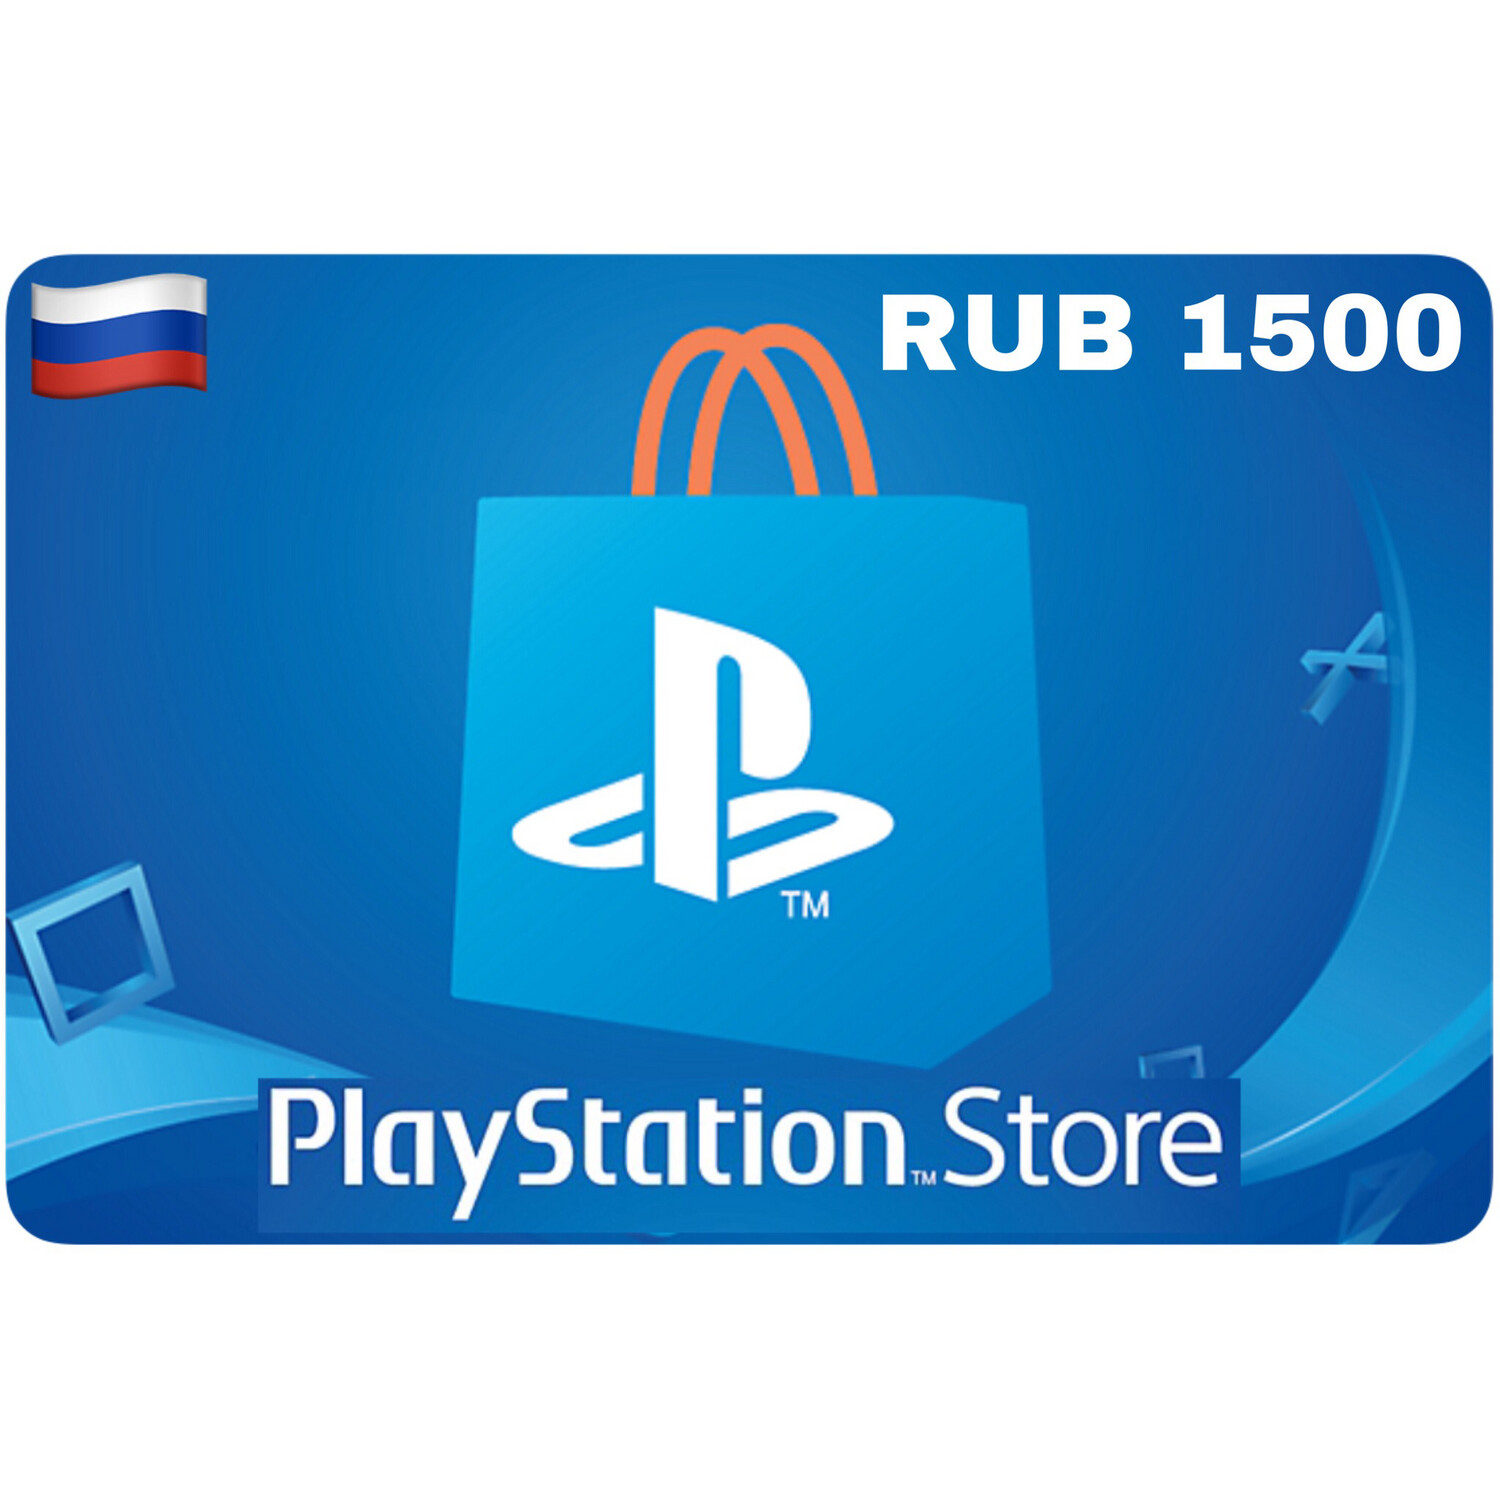 Playstation Store Gift Card Russia RUB 1500